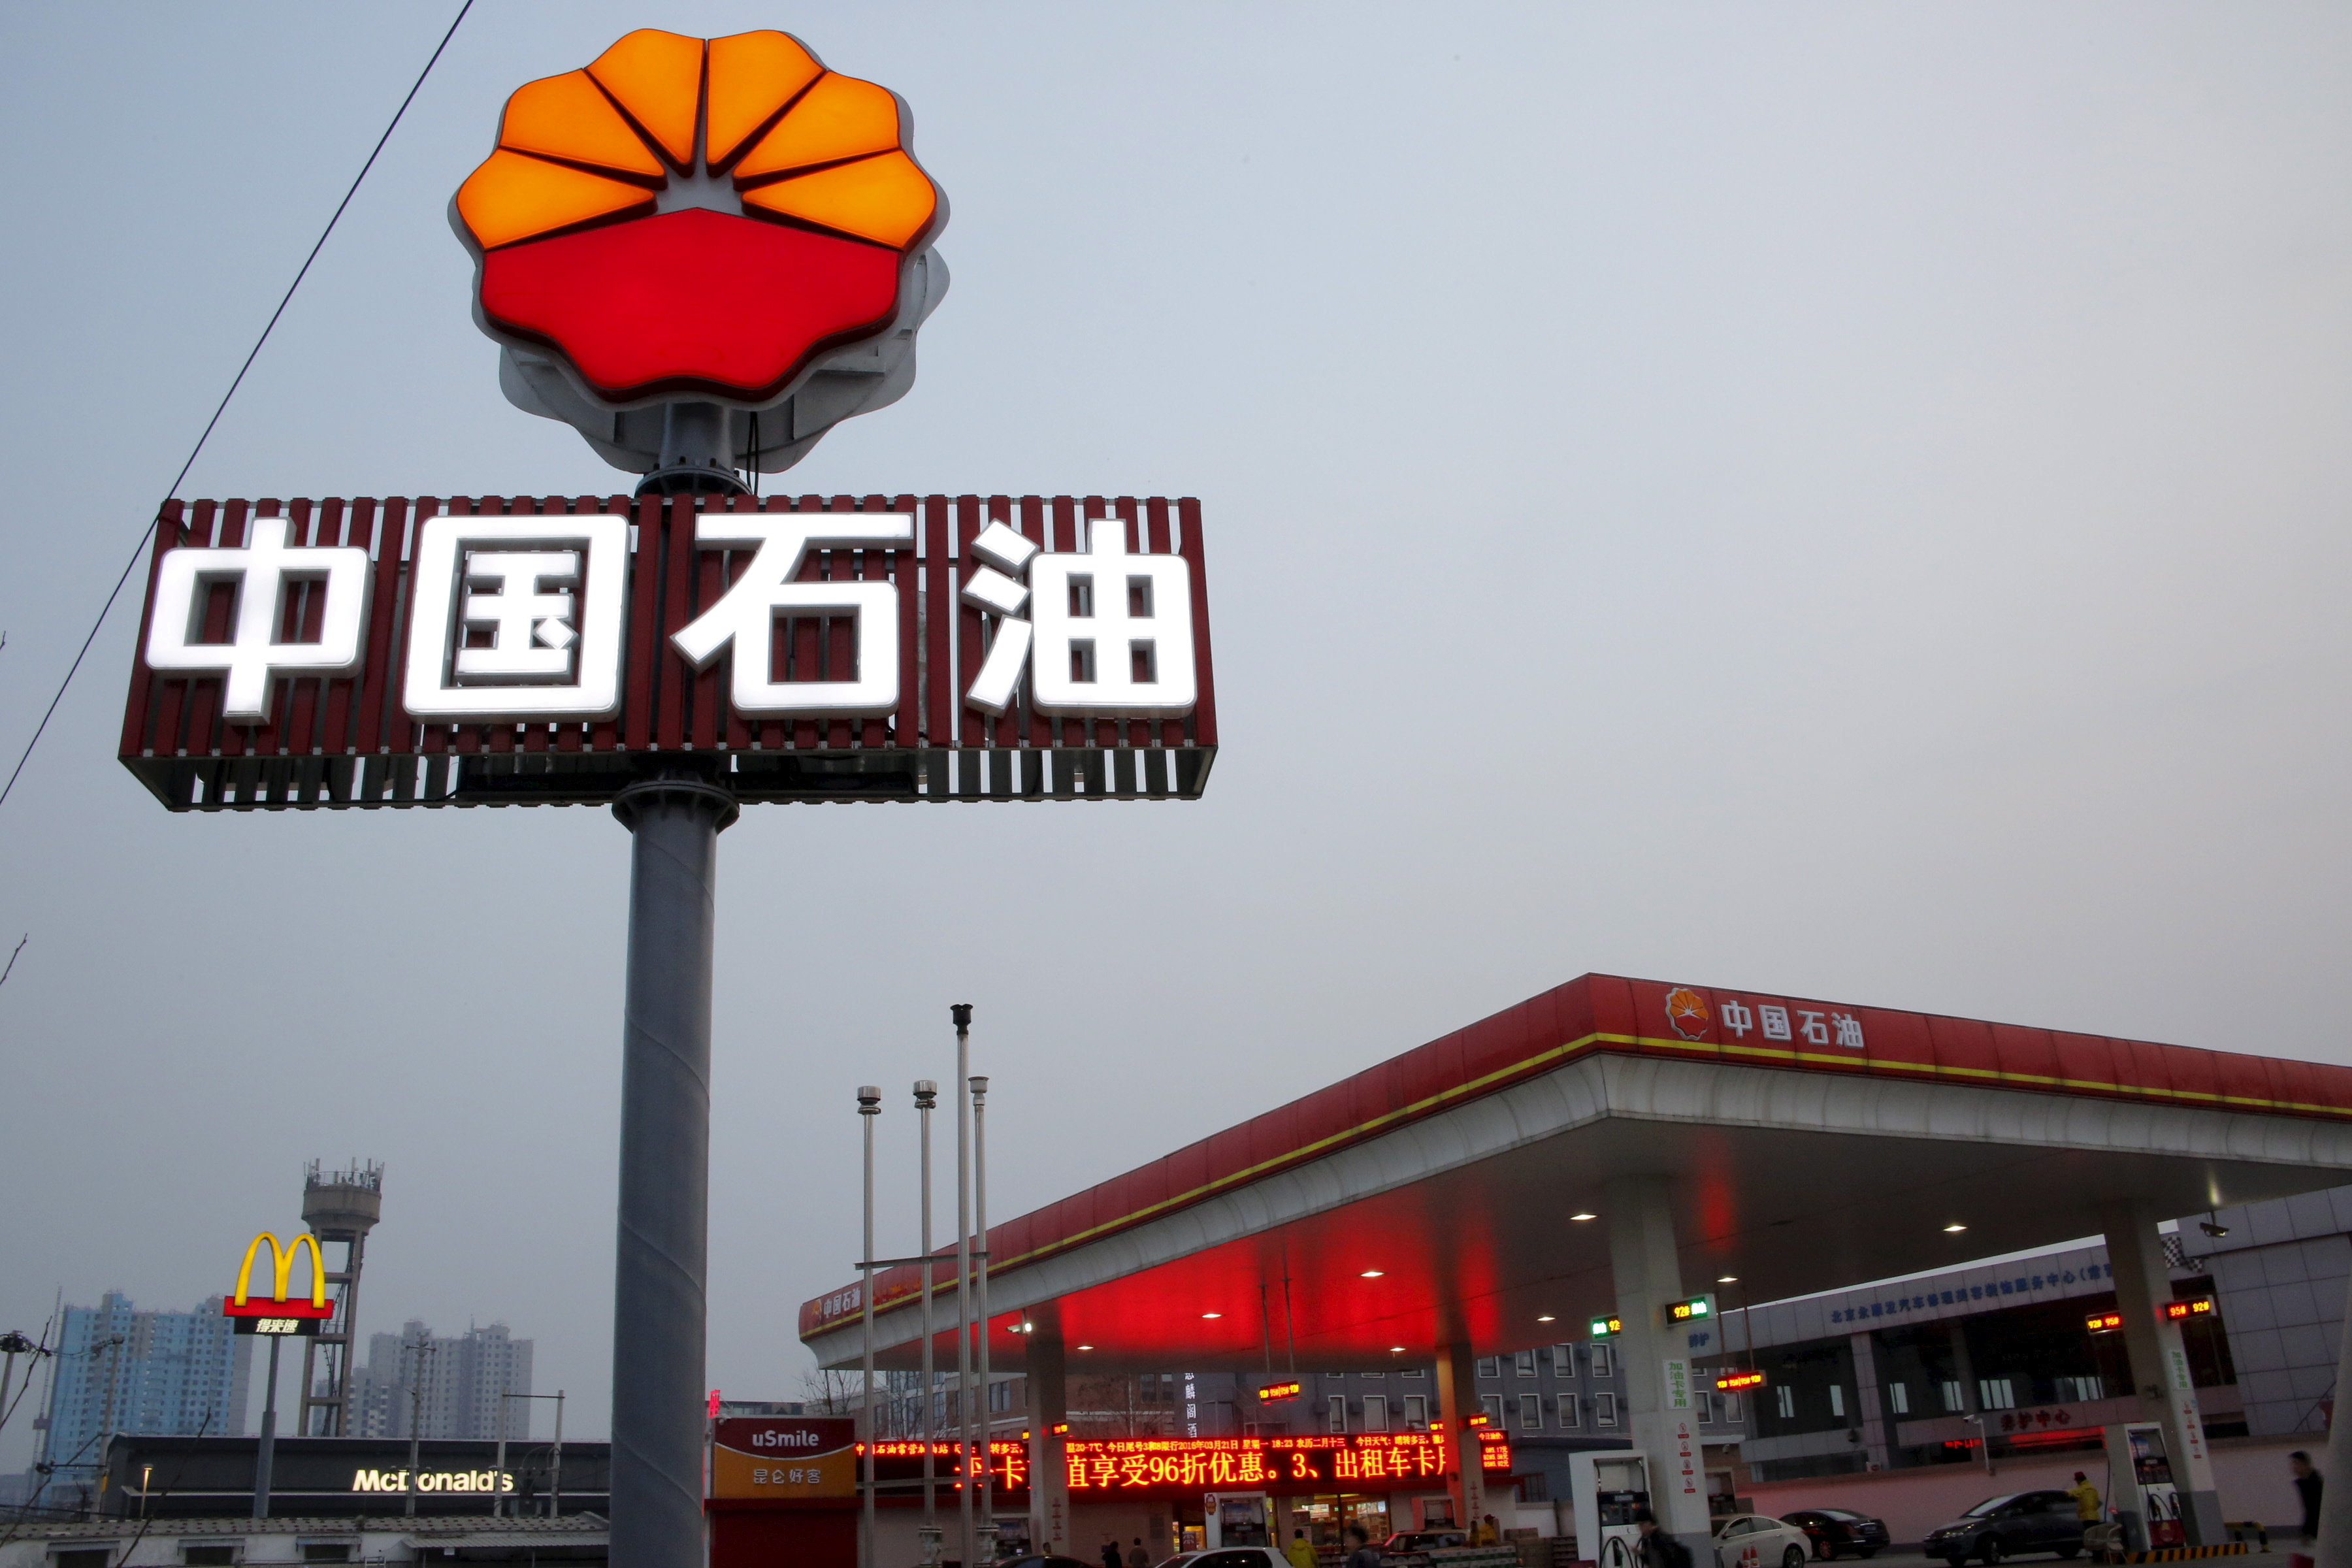 A PetroChina petrol station is pictured in Beijing, China, March 21, 2016.  REUTERS/Kim Kyung-Hoon/File Photo